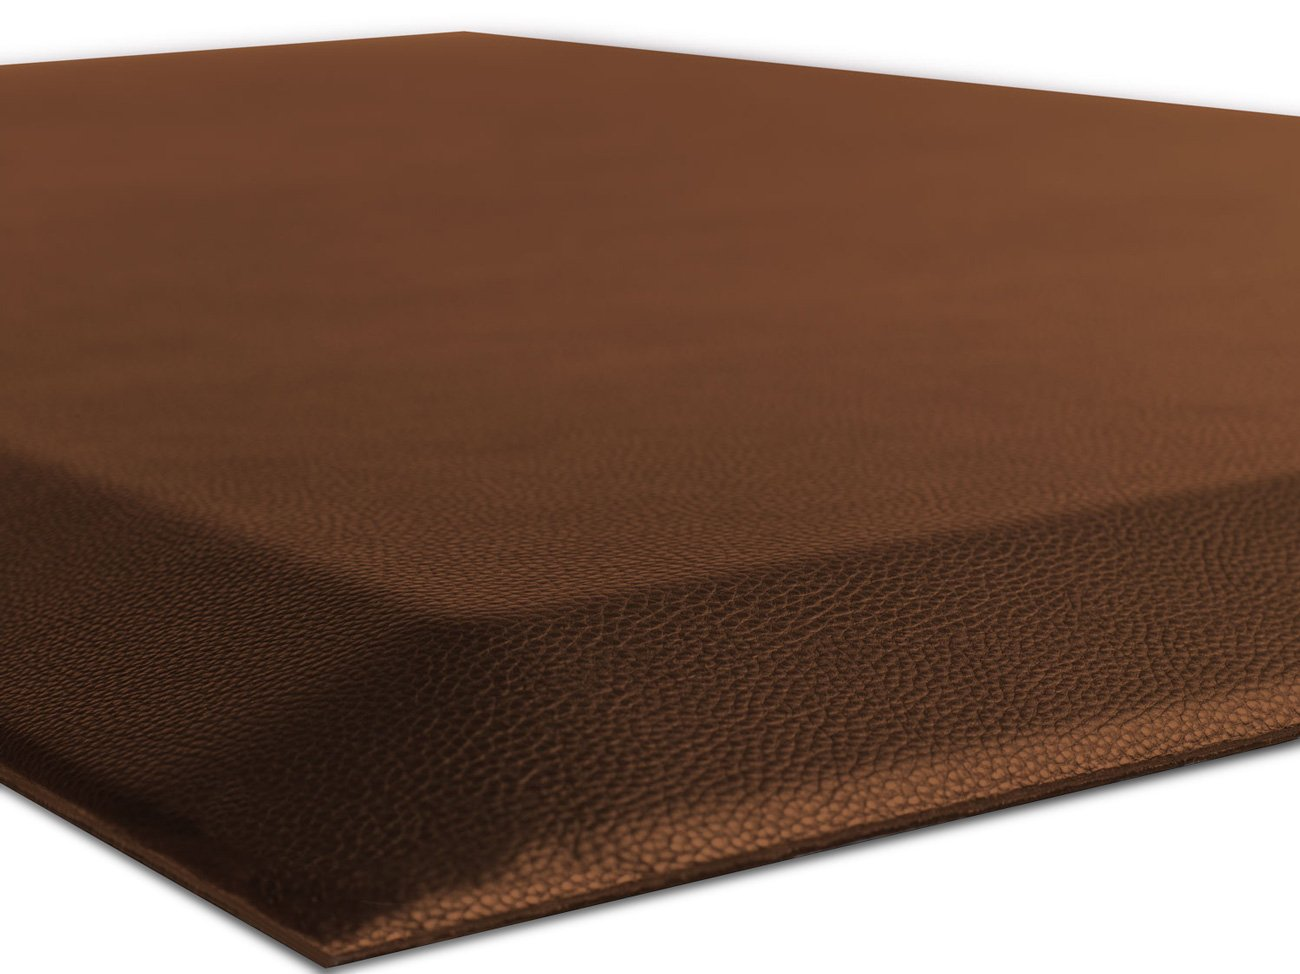 The Original 3/4'' GORILLA GRIP (R) Premium Anti-Fatigue Comfort Mat, Perfect for Kitchen and Office Standing Desk, Ergonomically Engineered, 6 Colors and 3 Sizes, Non-Toxic, 70x24 inches (Brown)